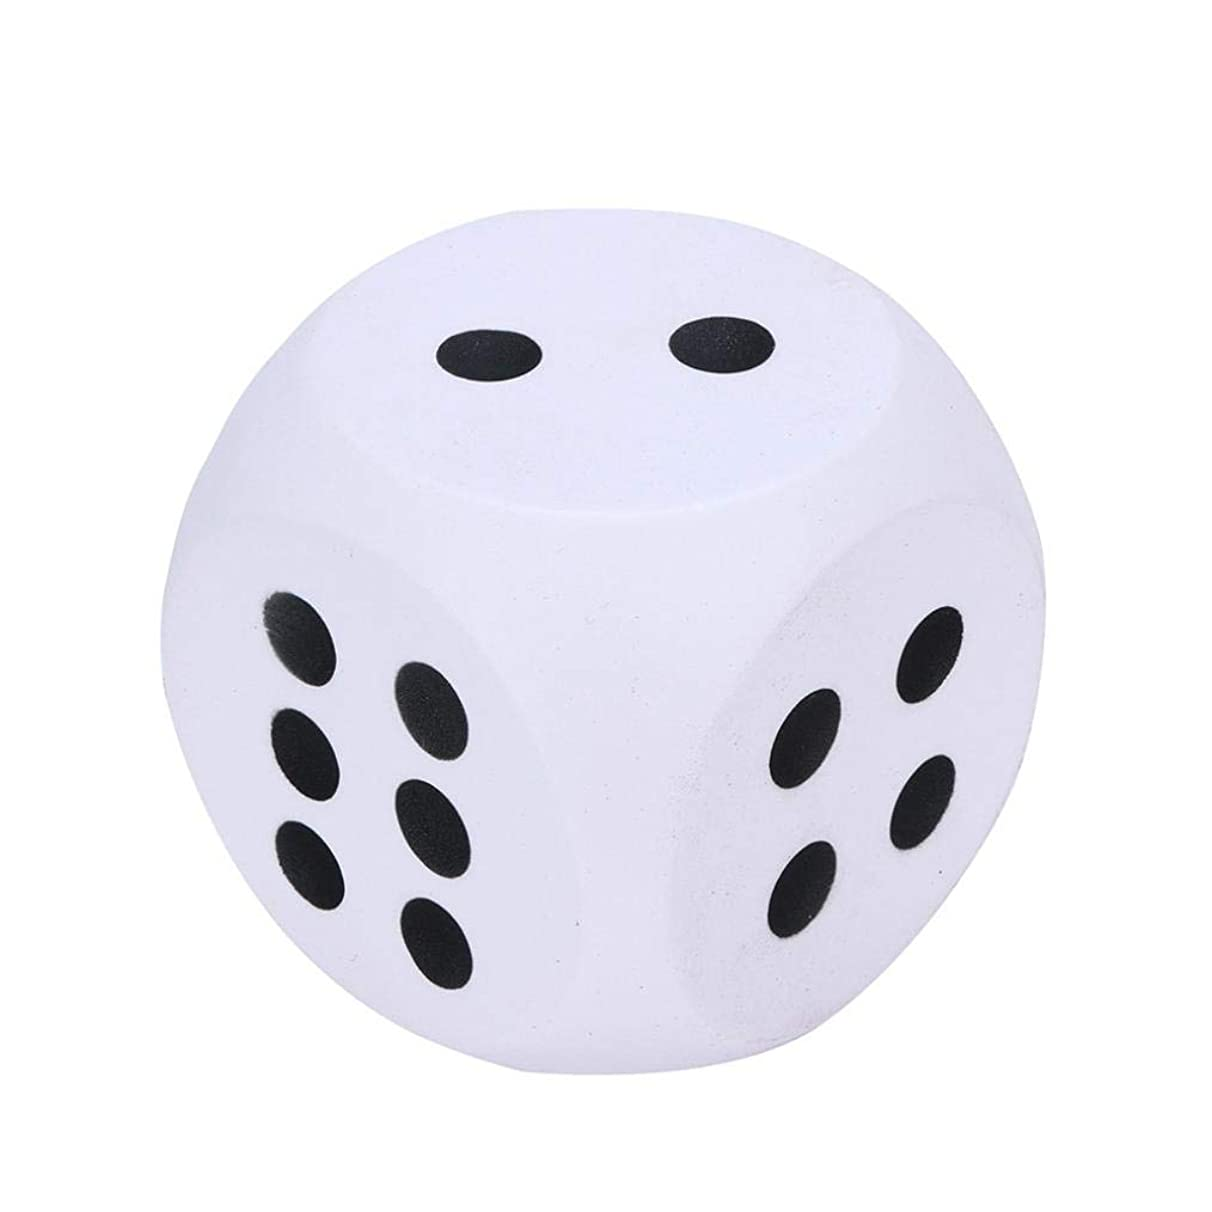 Livoty 10cm Jumbo Dice Toys Slow Rising Cream Squishies Giant Scented Stress Relief Toy